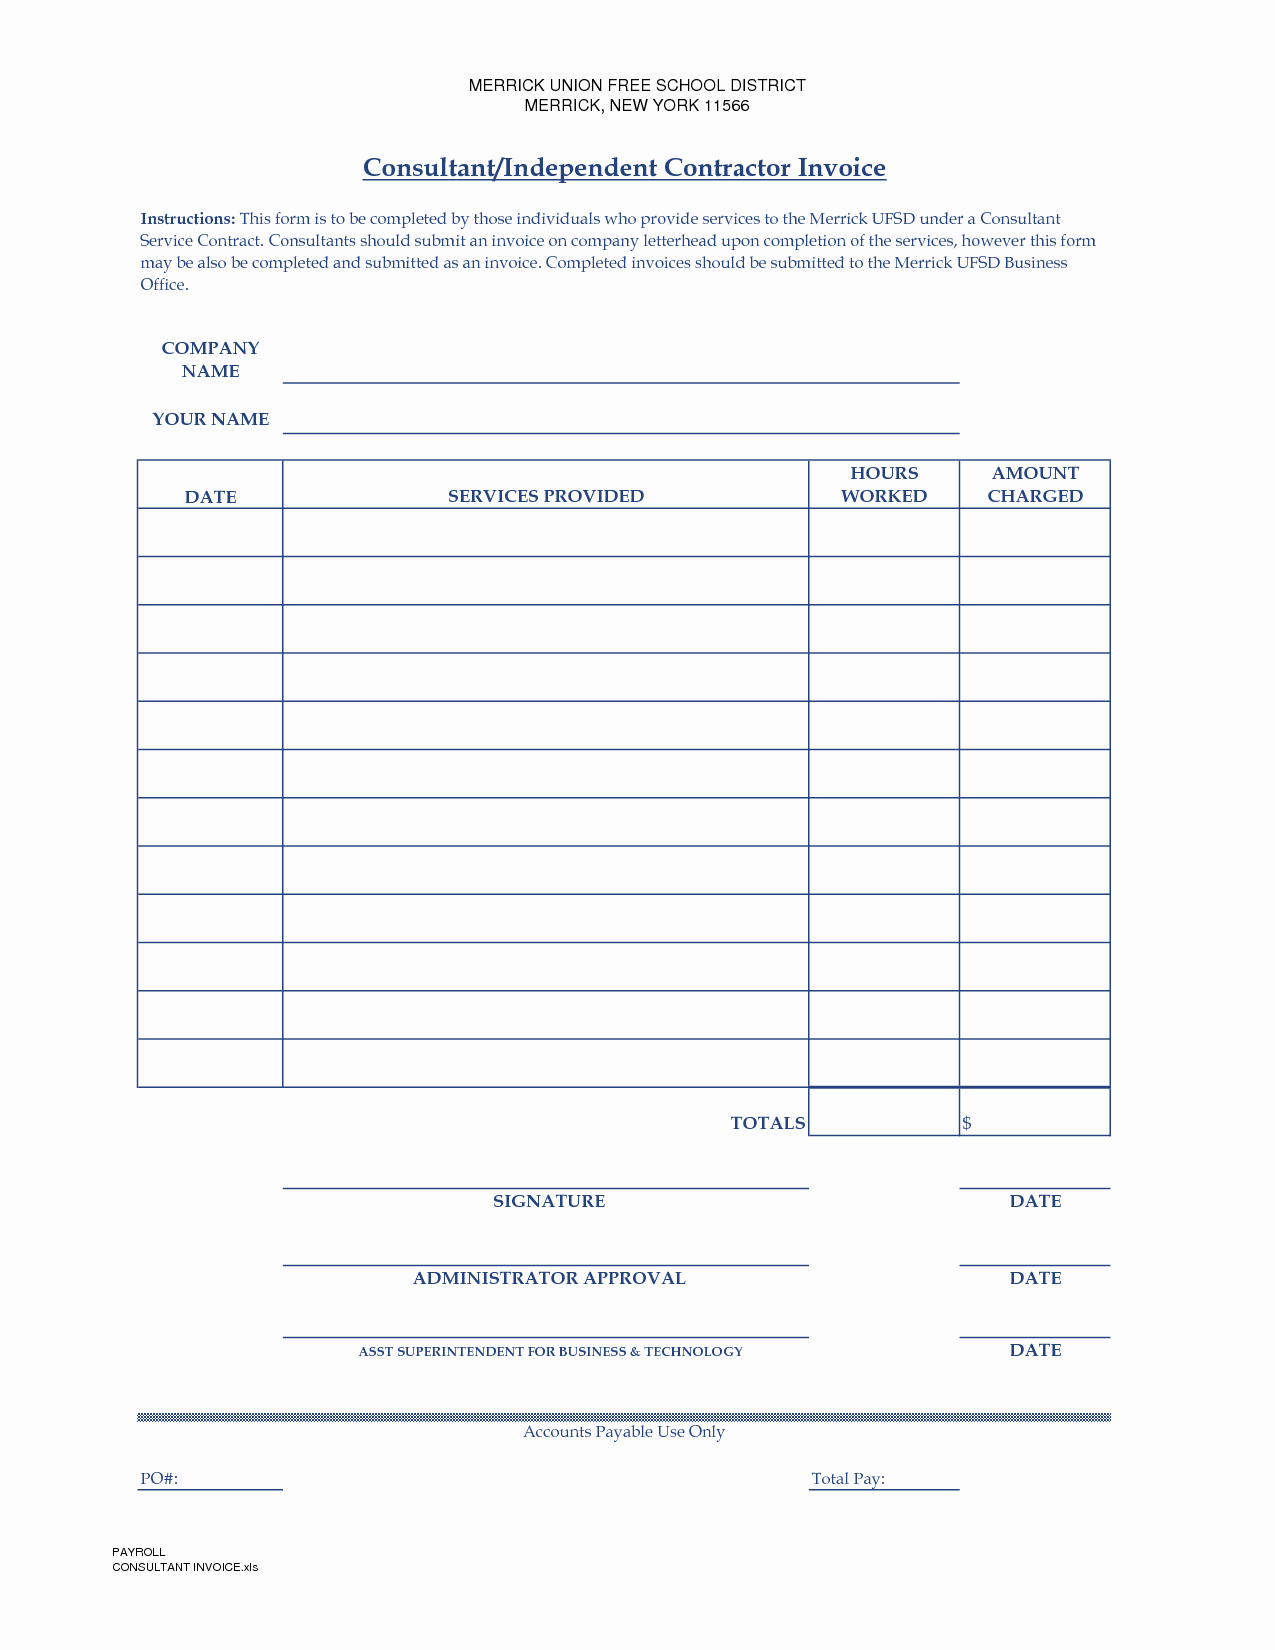 Independent Contractor Invoice Template Free New Independent Contractor Invoice Template